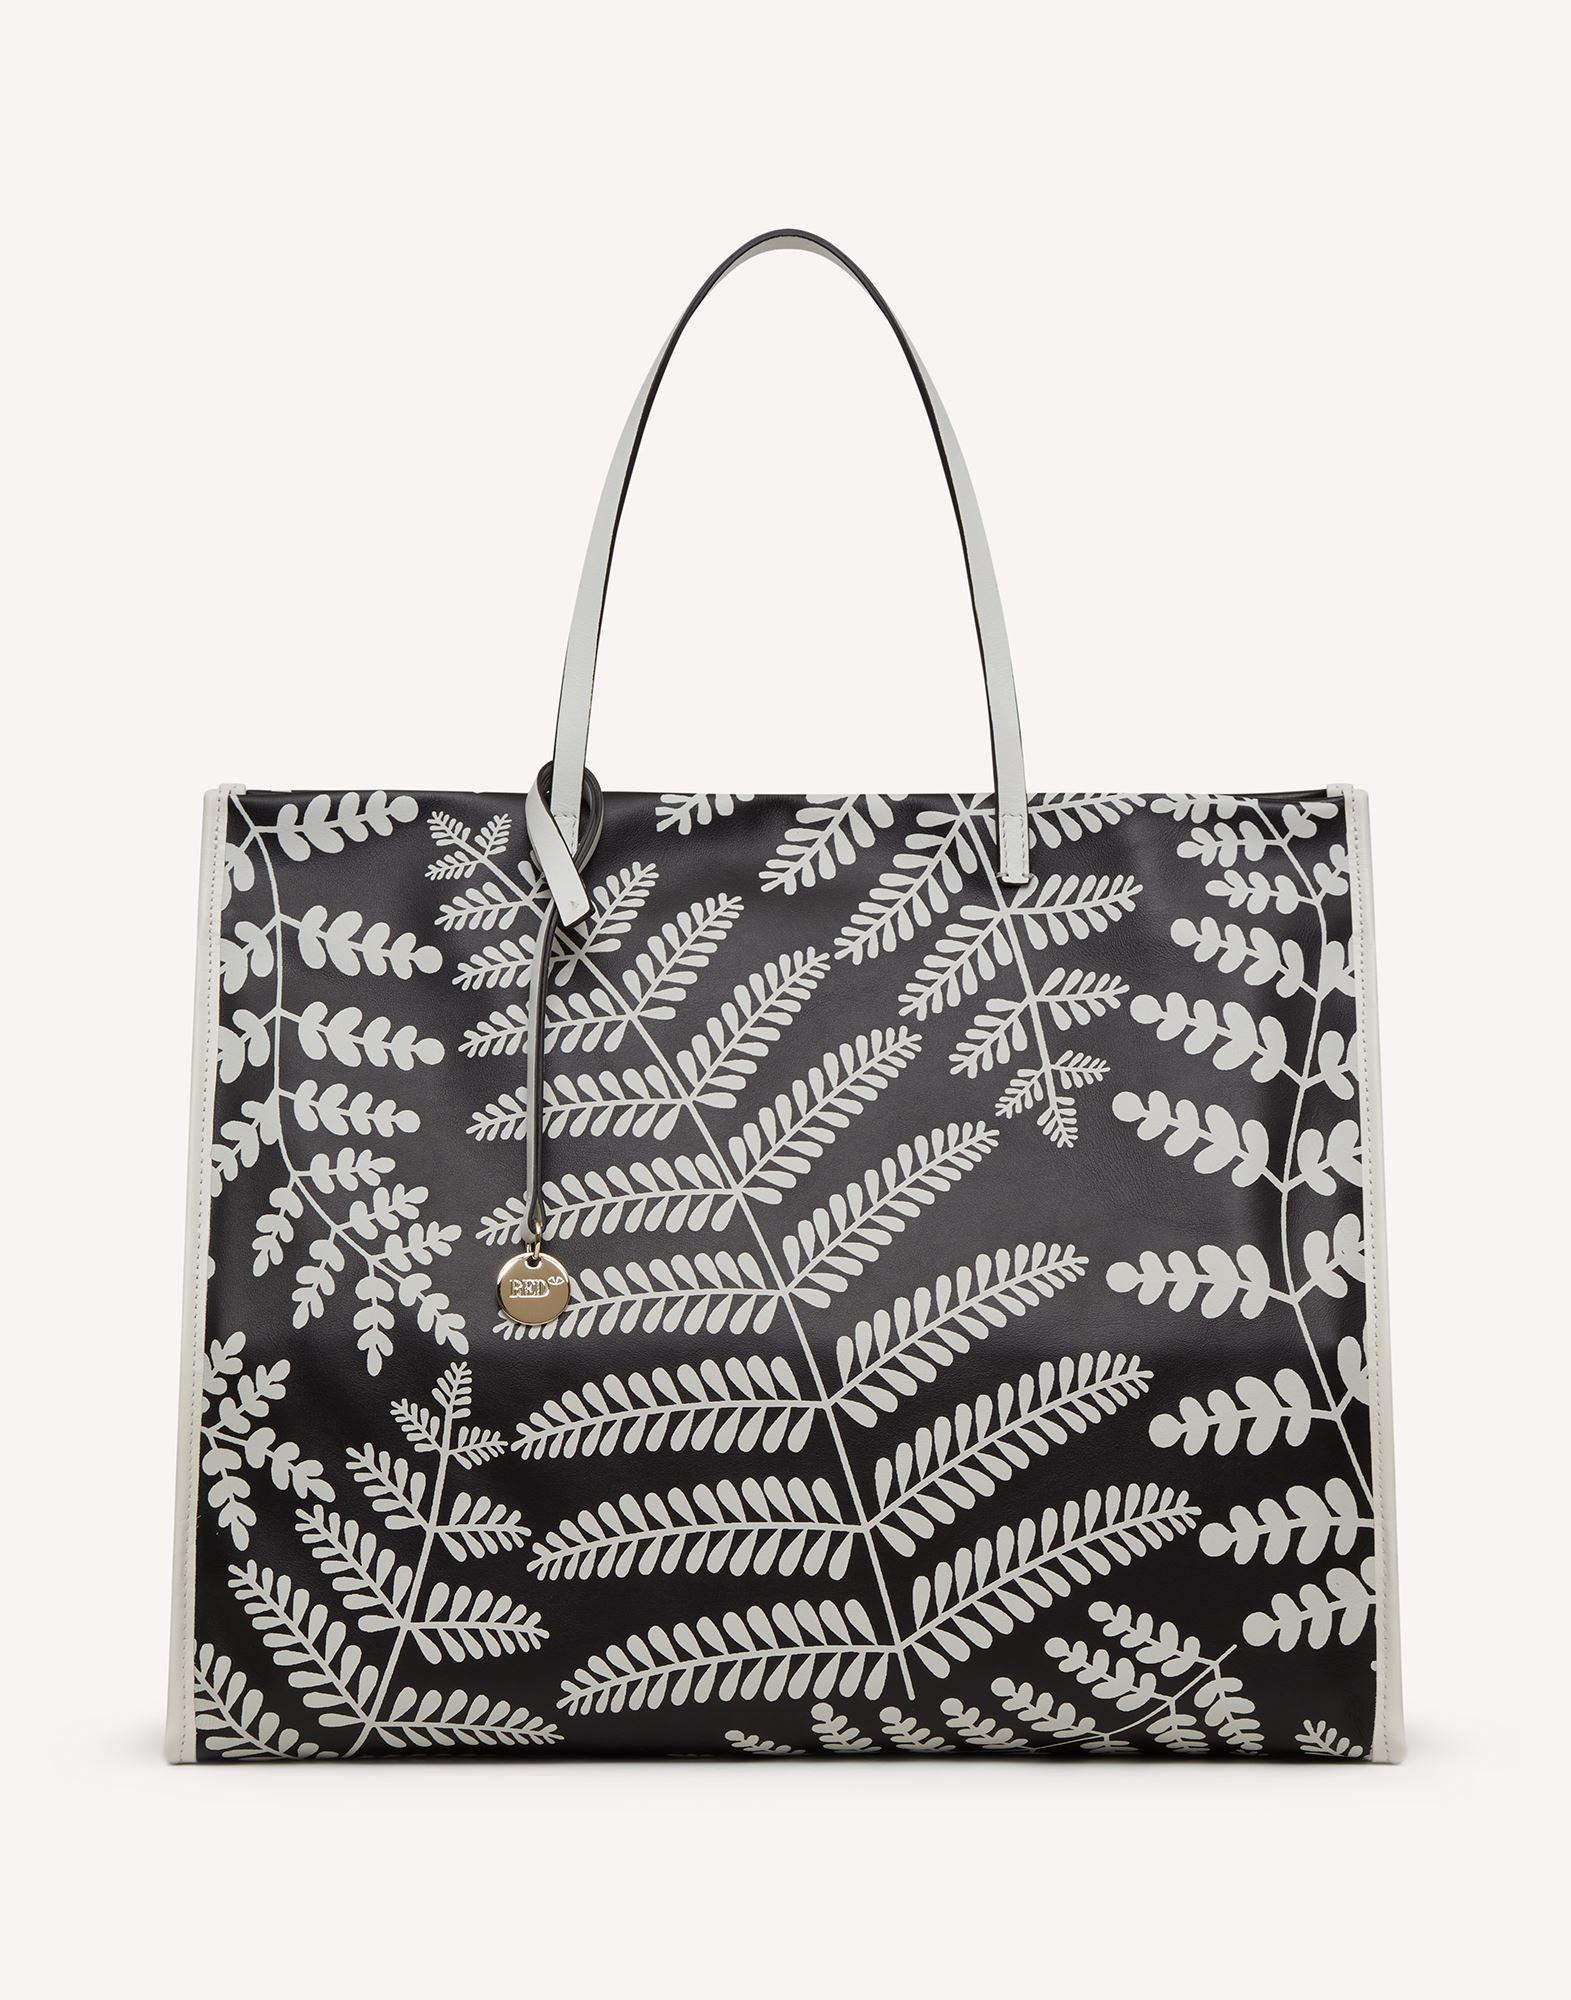 CHELSEA IN BLOOM LIMITED EDITION - PRINTED TOTE BAG